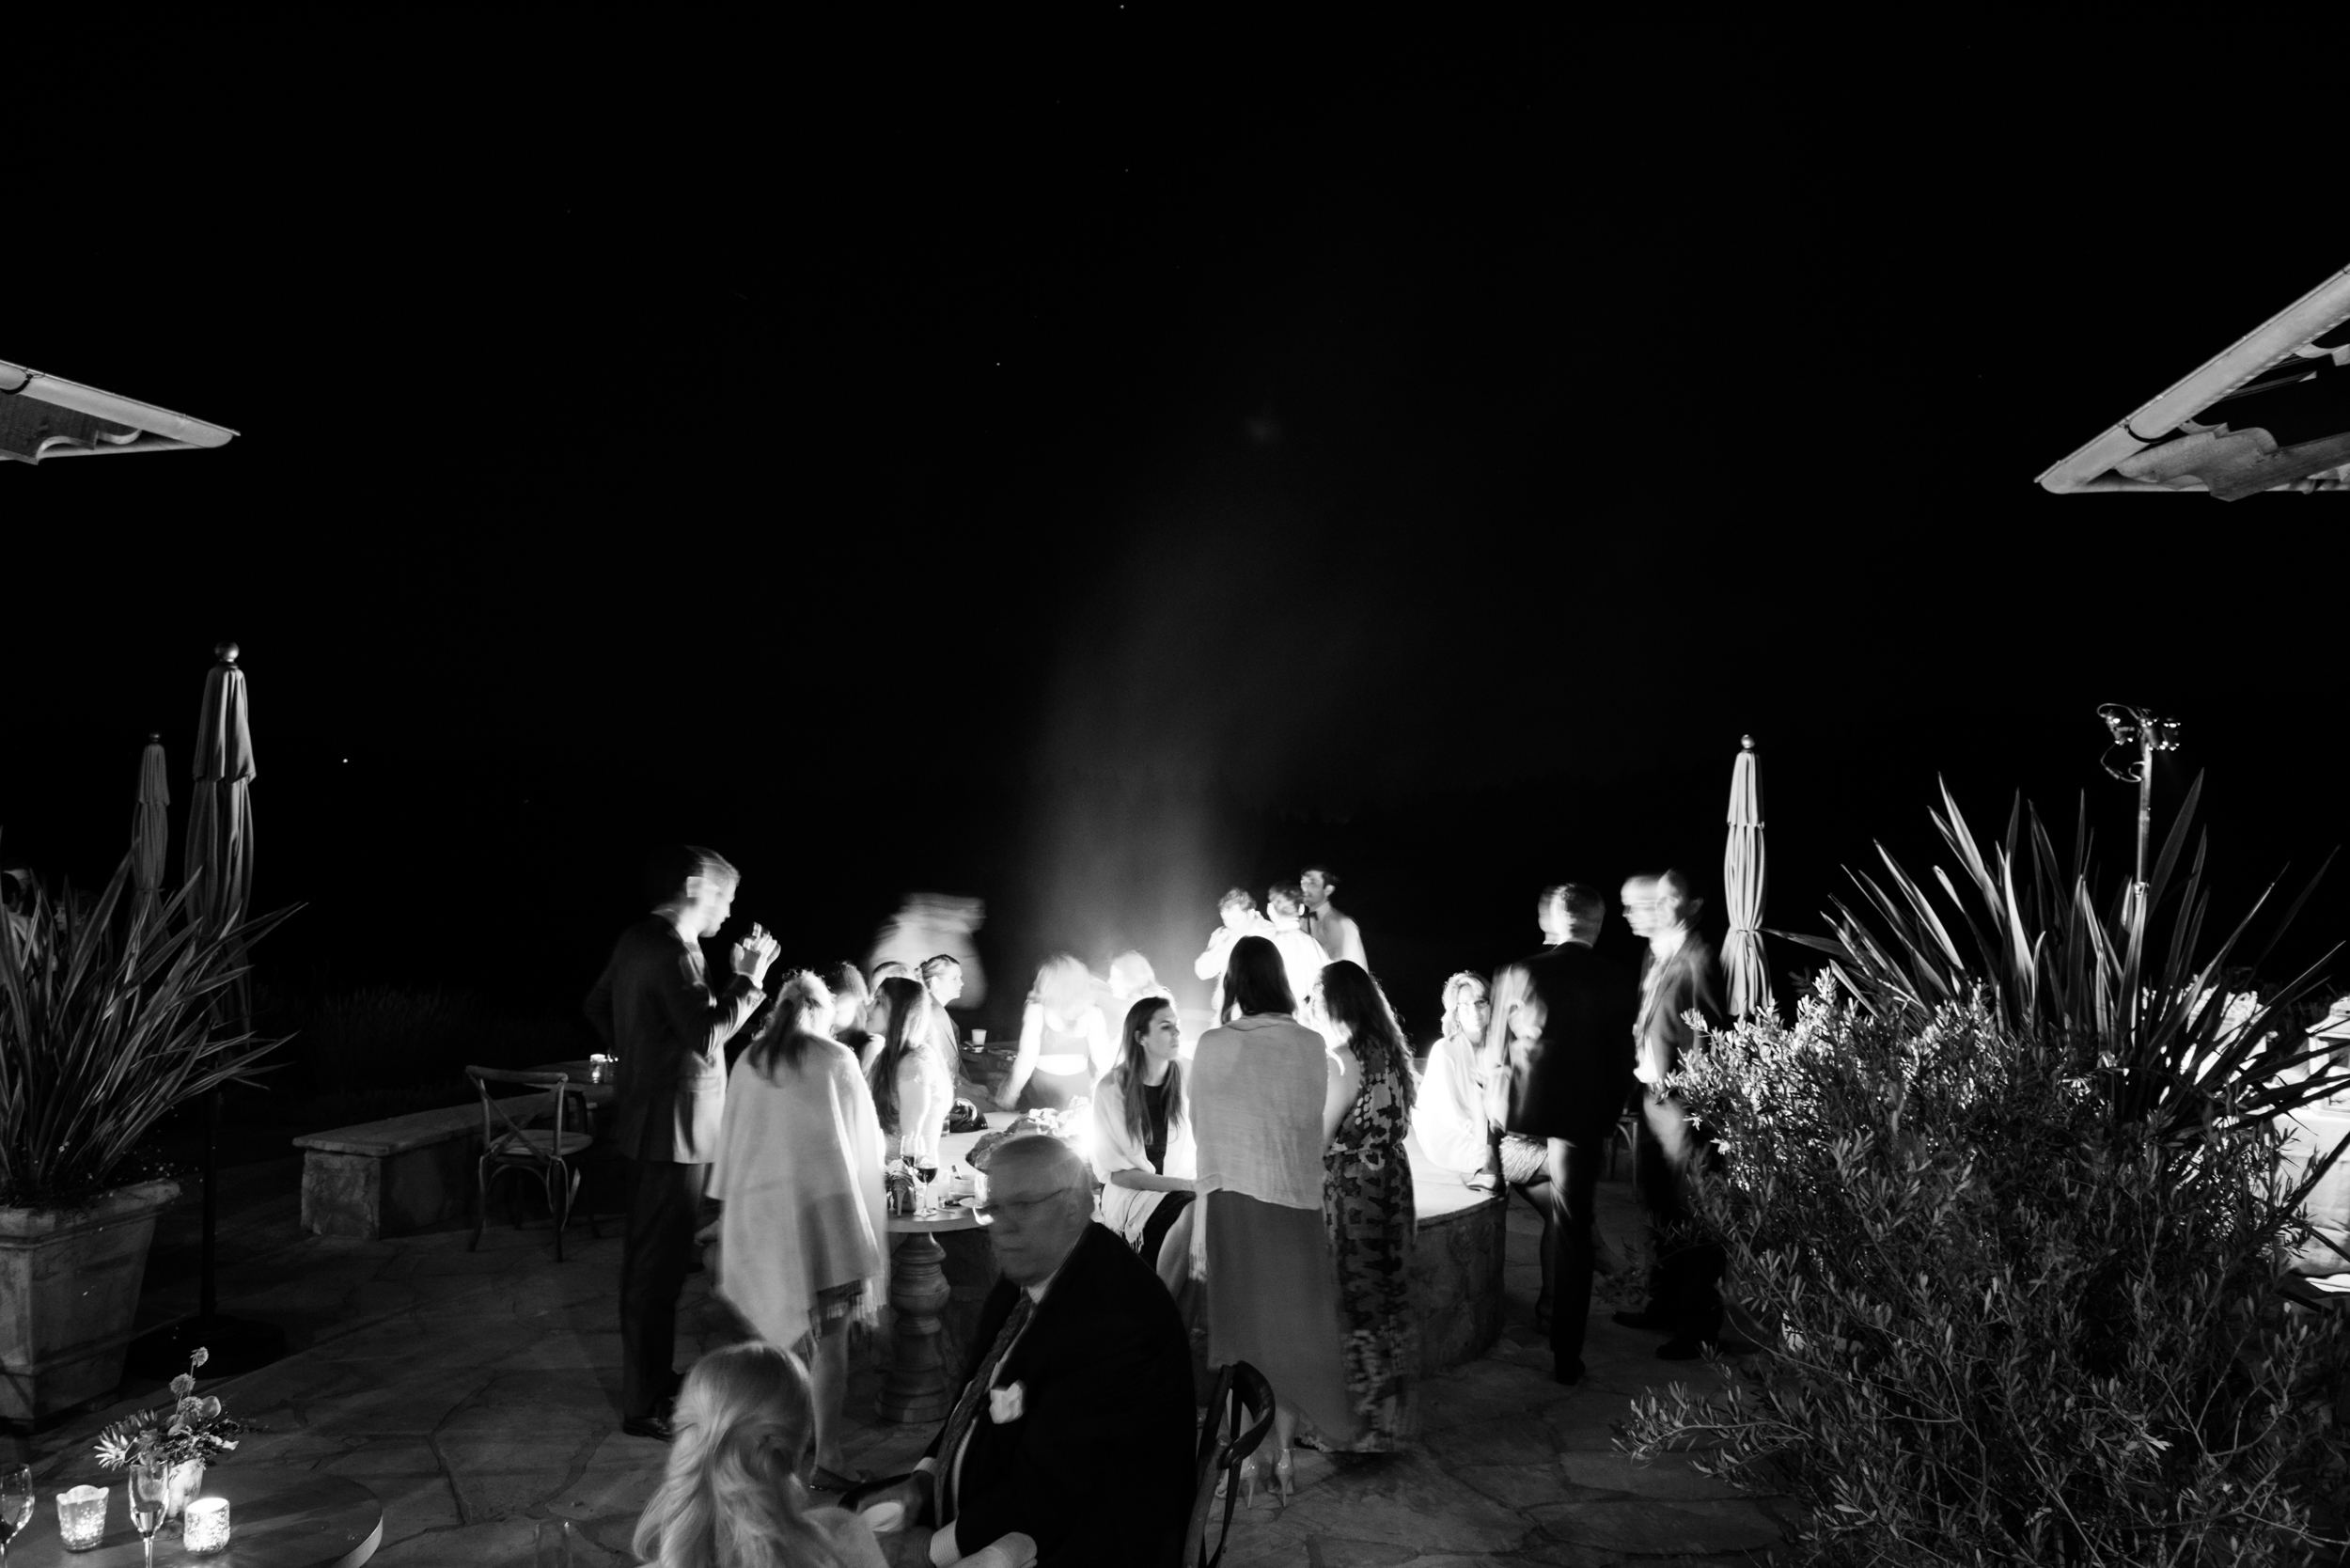 Guests wrapped in shawls stand around a fire pit at the outdoor reception after night has fallen; photo by Sylvie Gil